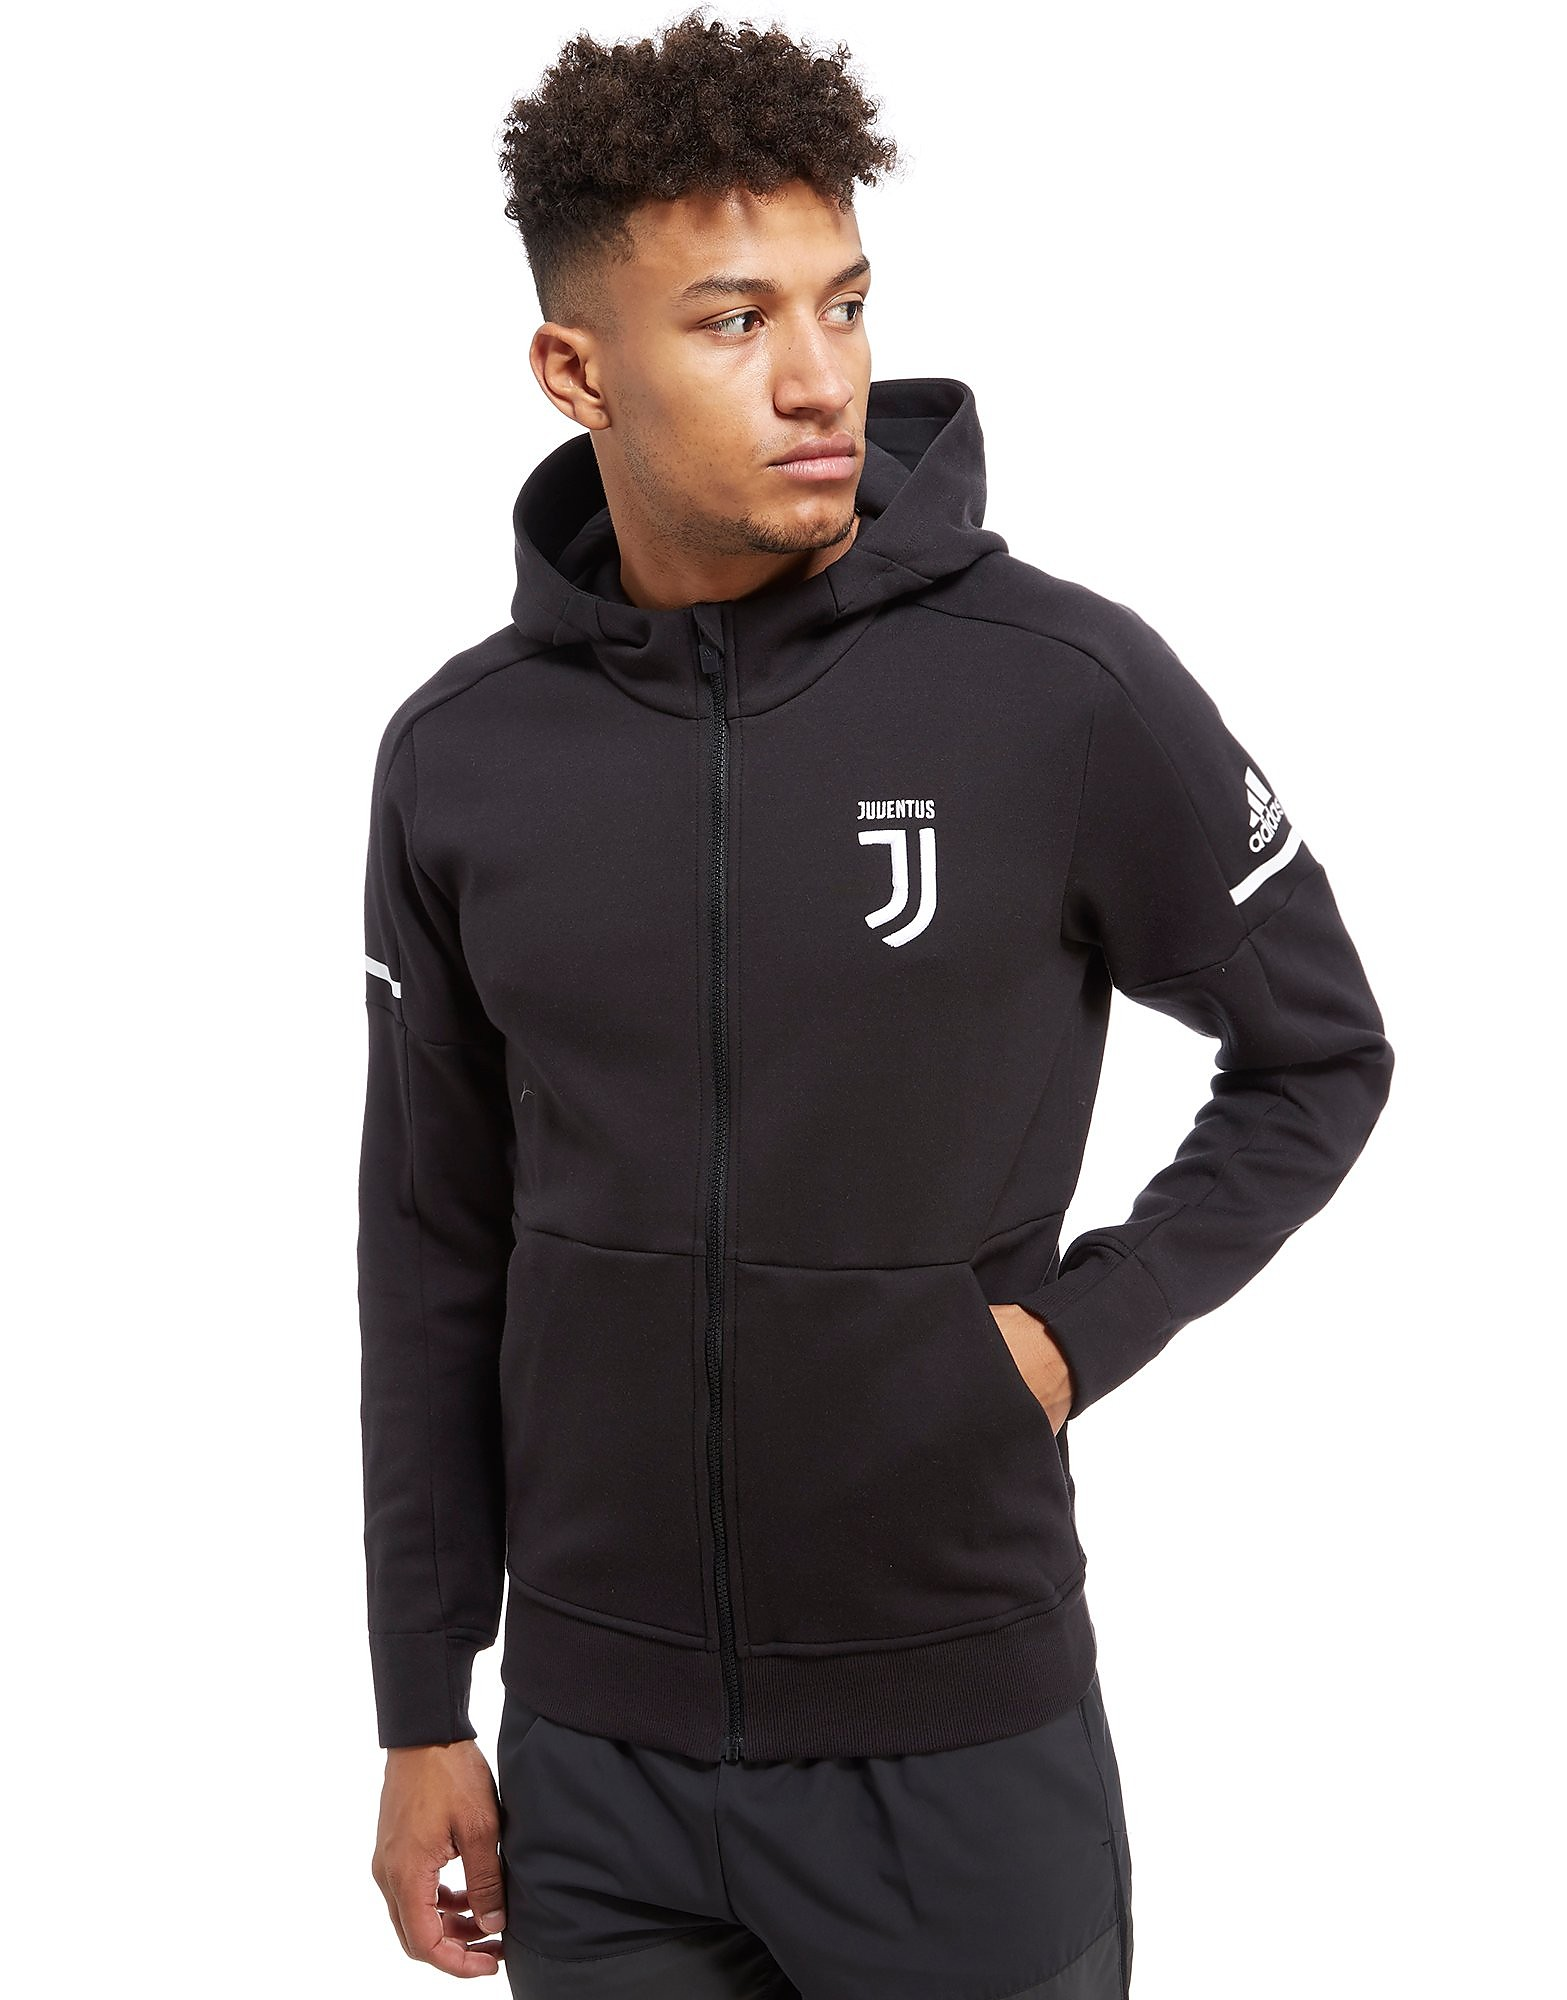 adidas Juventus 2017 Anthem Jacket